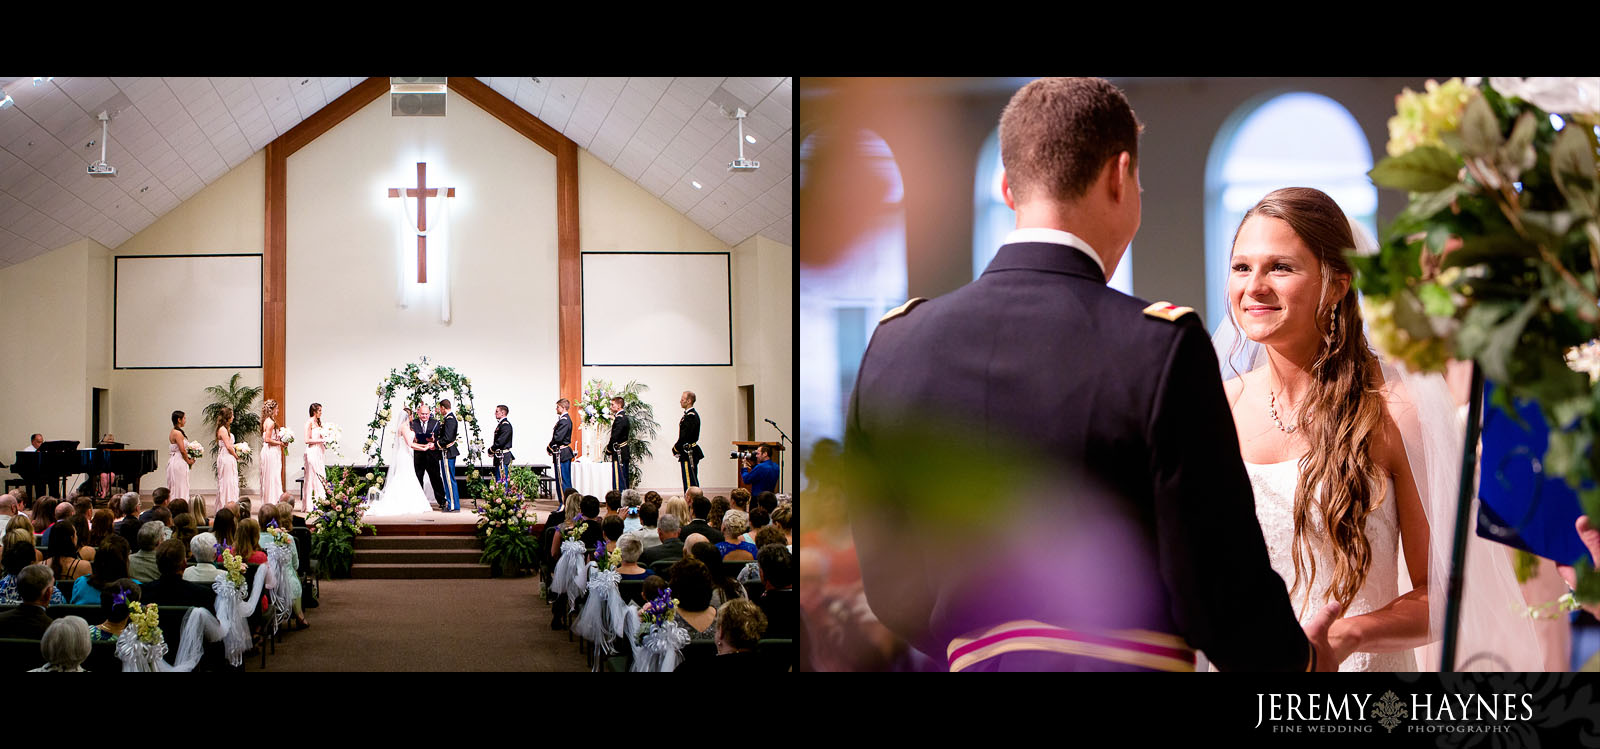 carmel-wedding-ceremony-radiant-christian-life-church.jpg